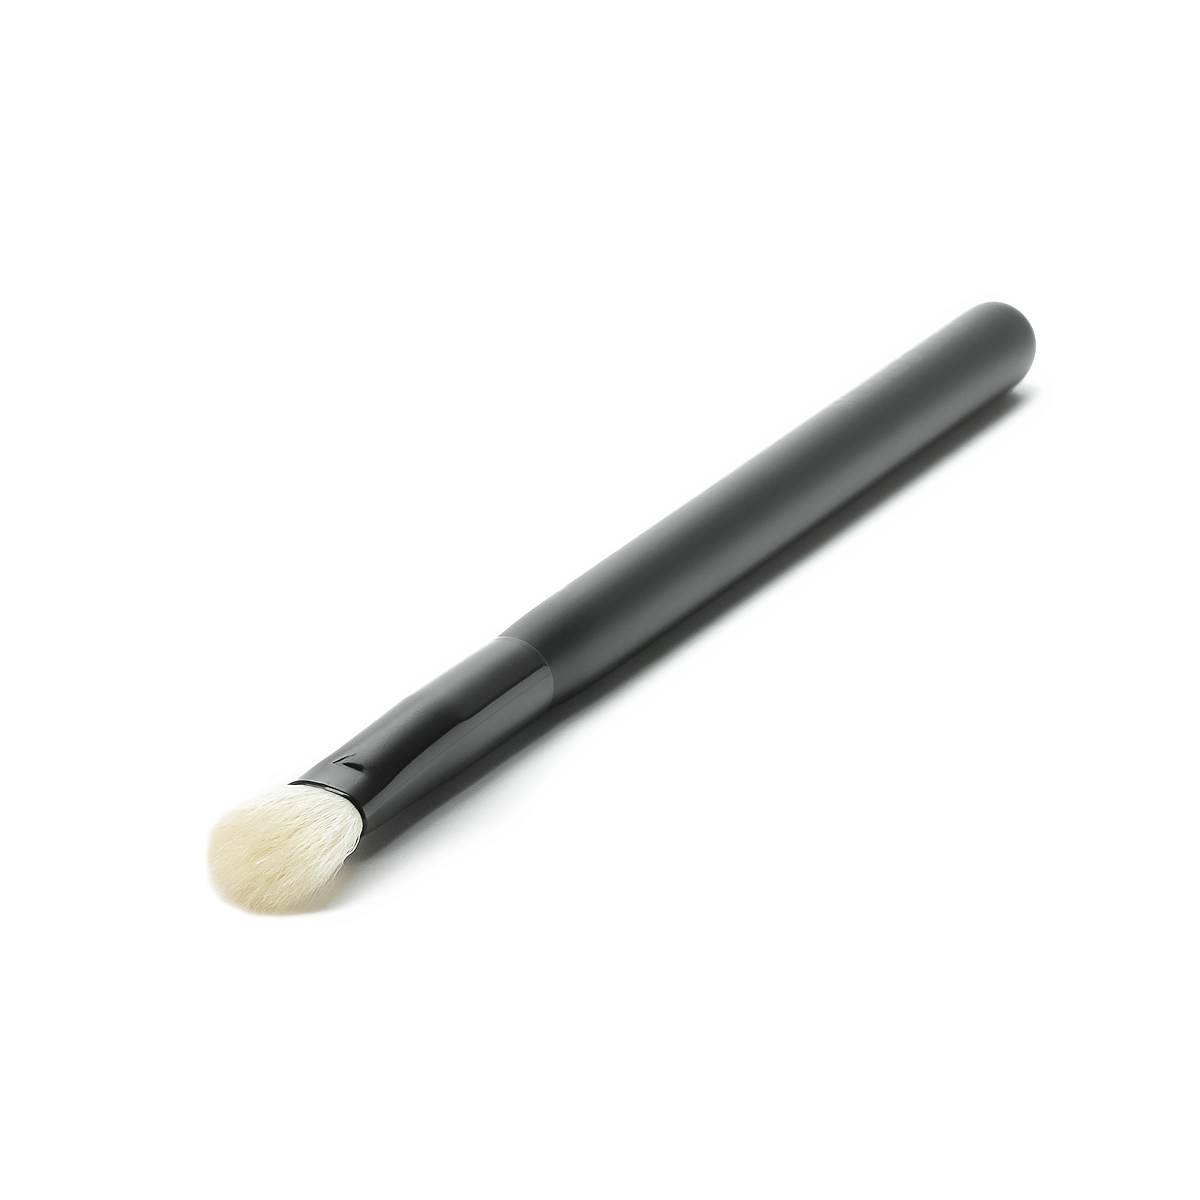 #37 Eyeshadow Blender Brush